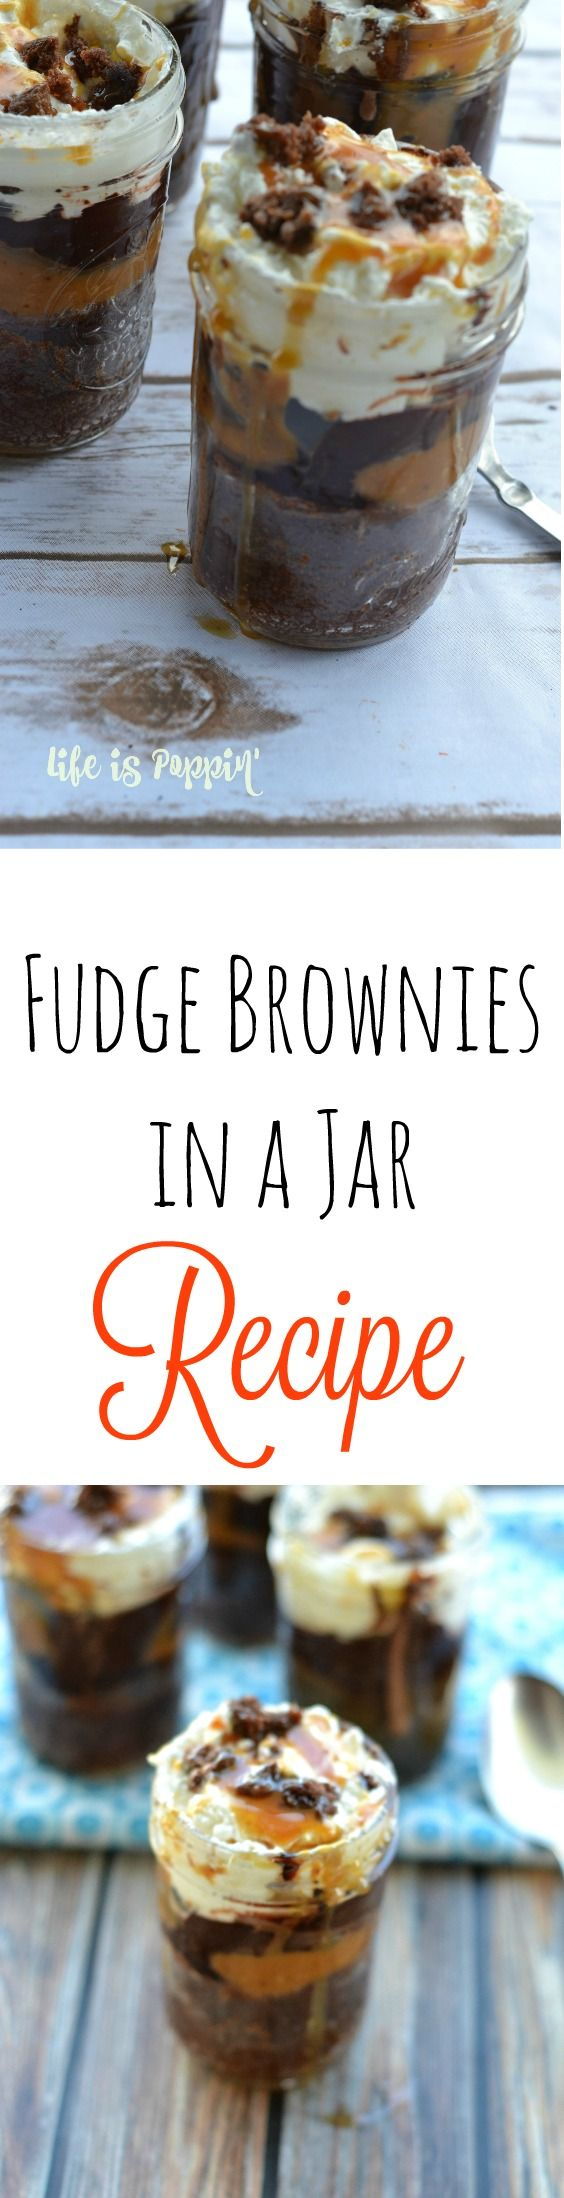 These fudge brownies in a jar are the perfect way to serve up a delicious dessert without spending a lot of time in the kitchen. With just one bite you will instantly fall in love with these fudge brownies in a jar. They are simple to make and you might already have the ingredients in your pantry. These fudge brownies are perfect to take to your next party for a dish to pass, or throw a batch together just because.